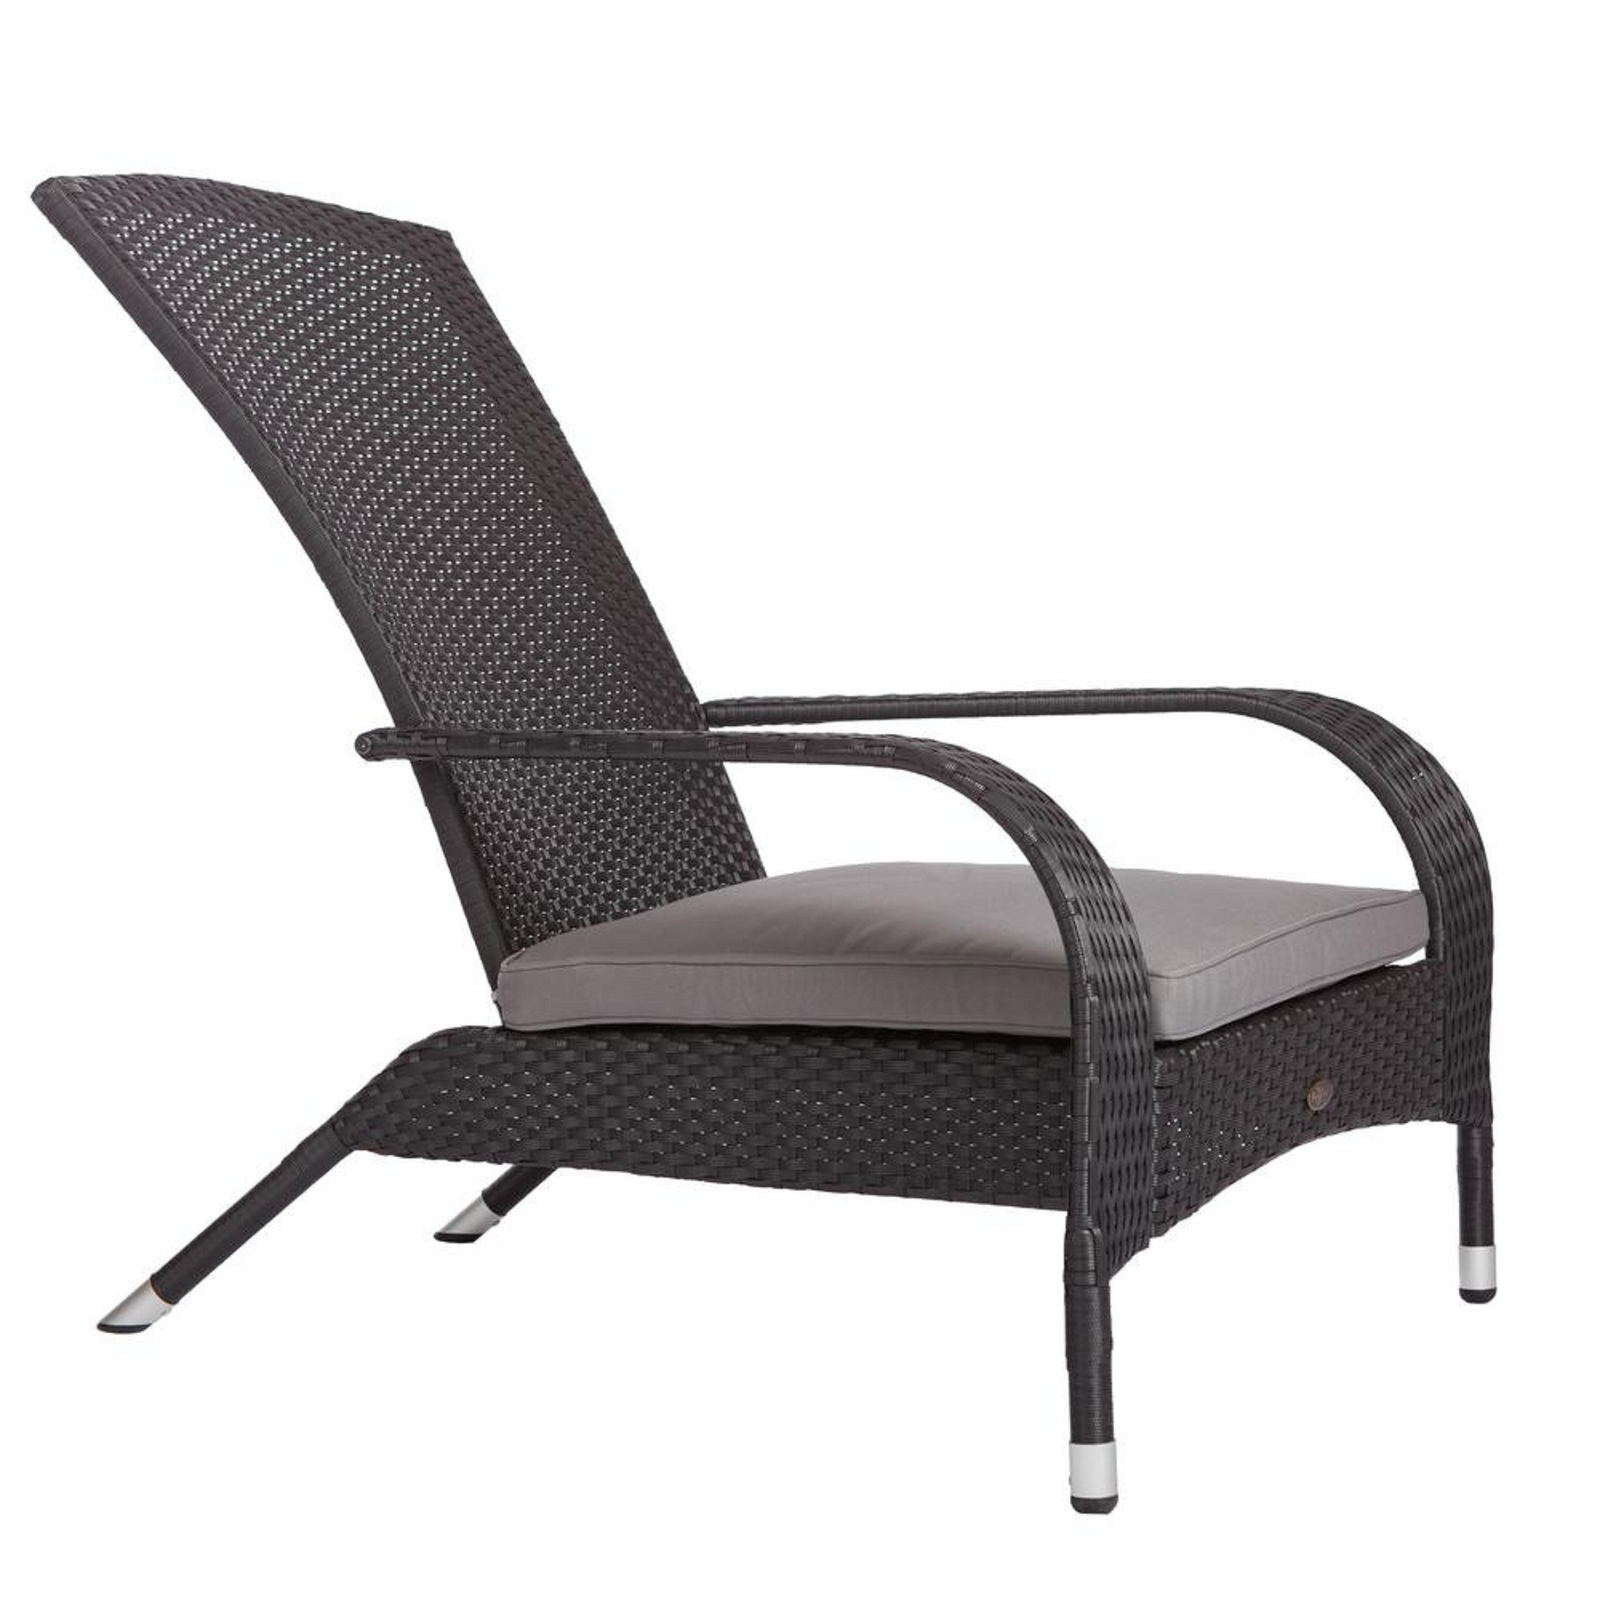 Outdoor Chair Furniture with Gray Cushion Black Wicker Plastic Poolside Patio